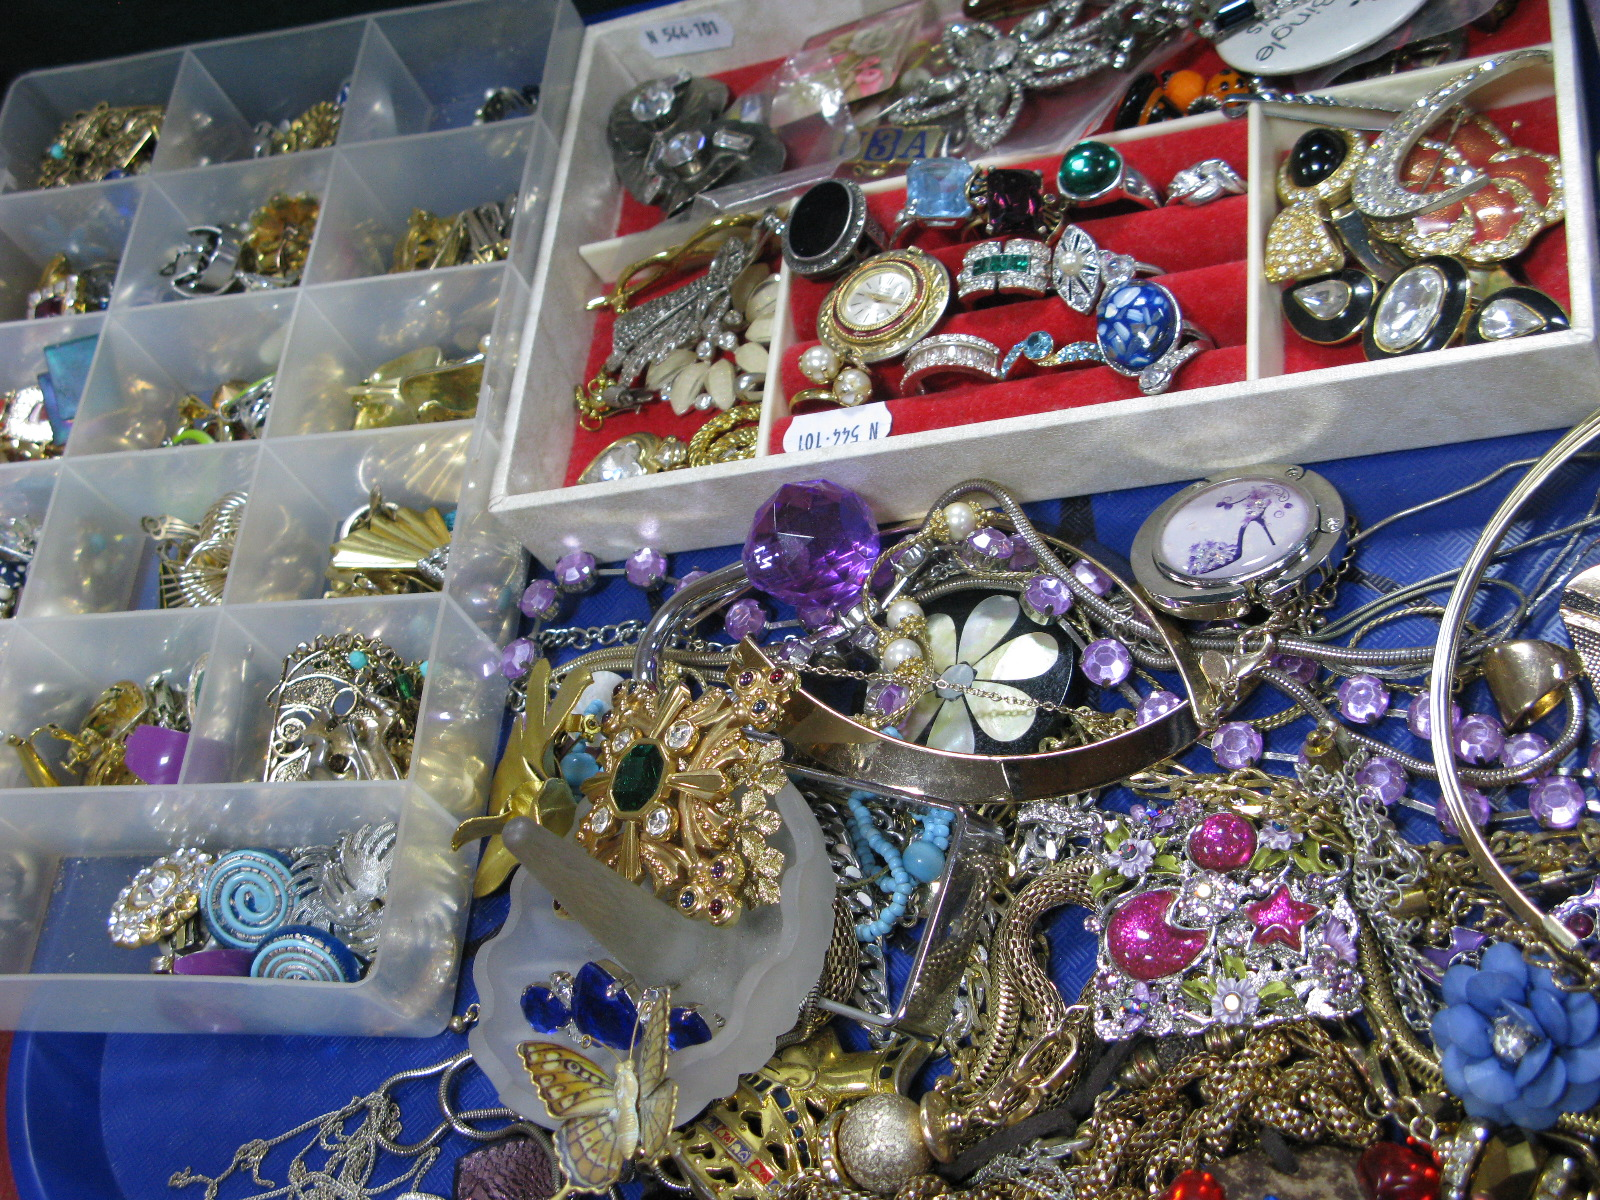 Lot 1046 - A Mixed Lot of Assorted Costume Jewellery, including Swarovski and other brooches, Nefertiti and